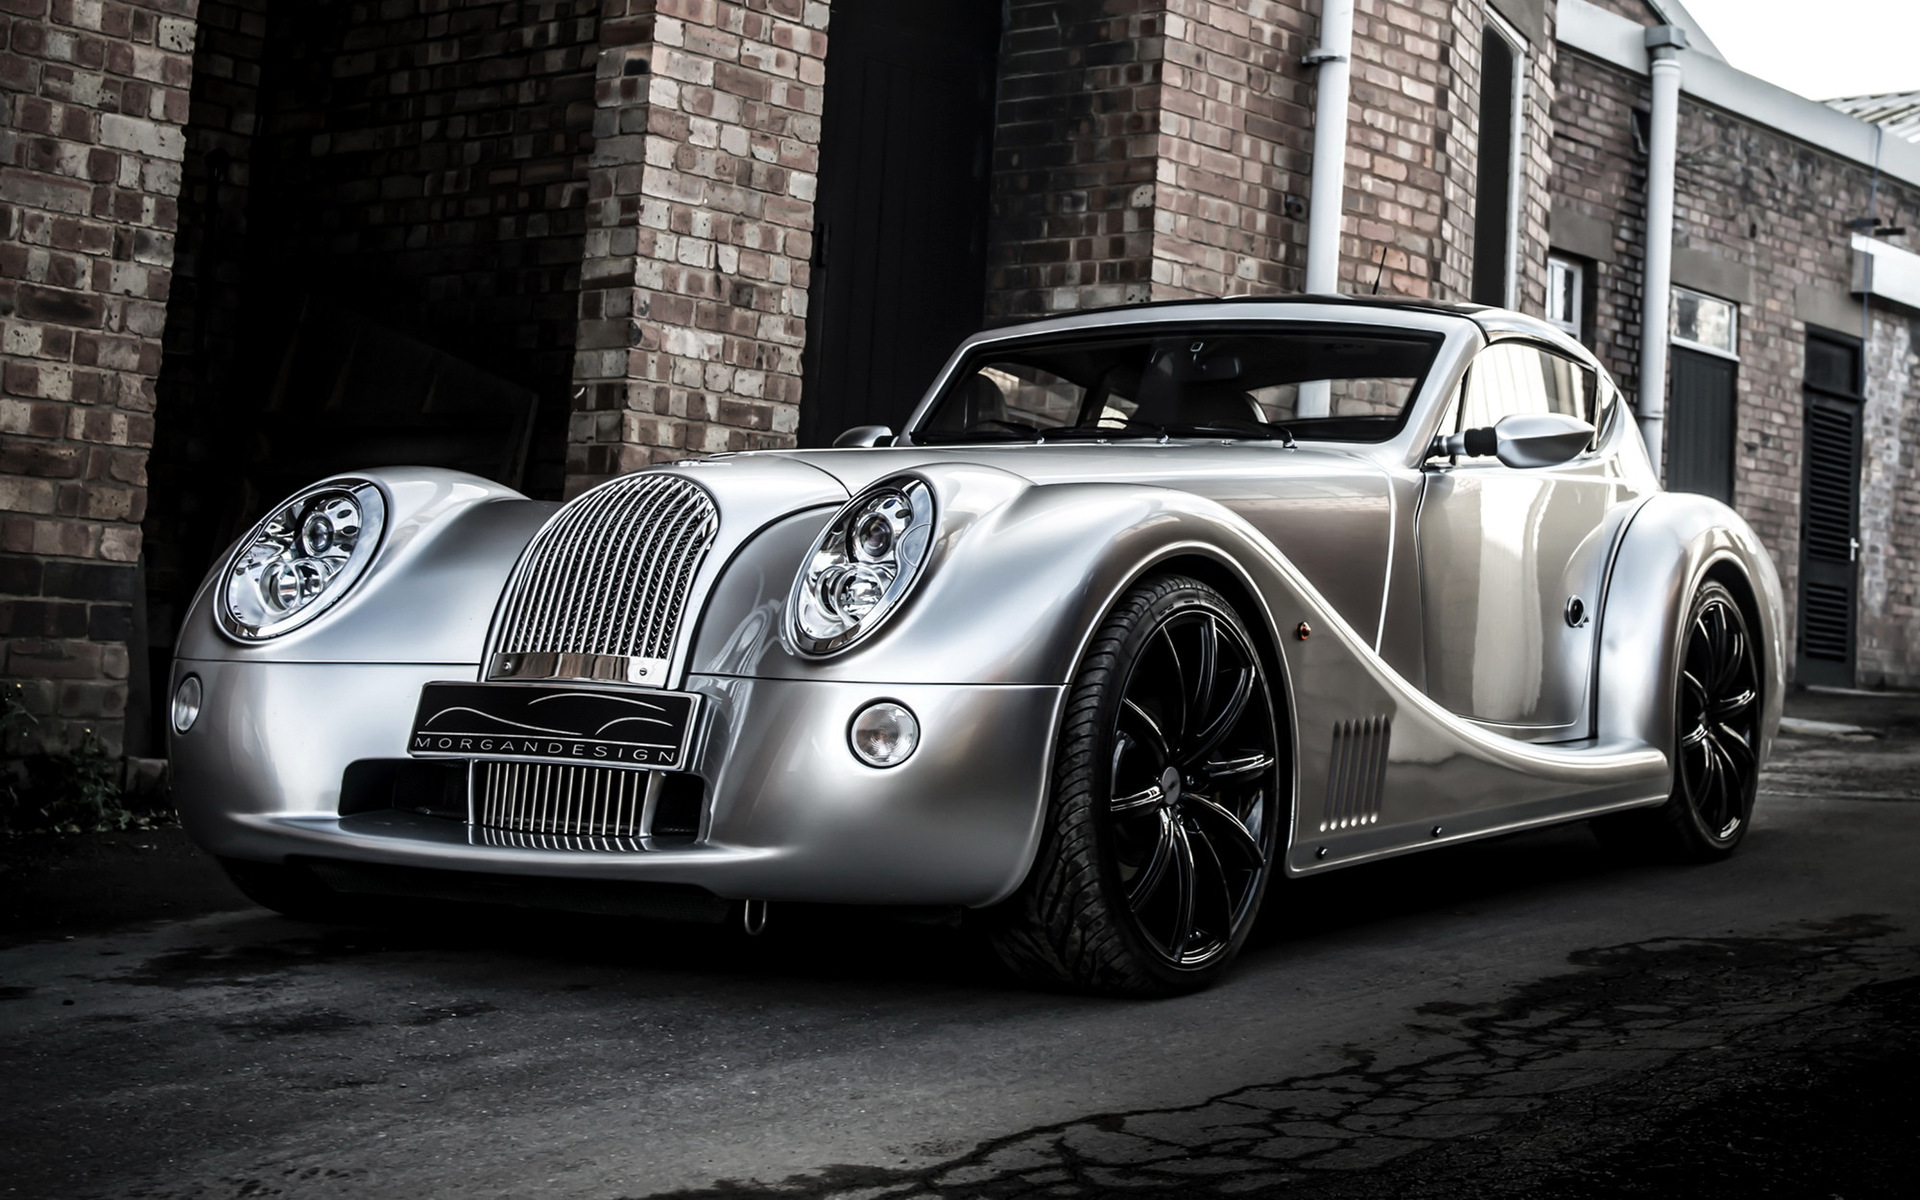 2010 Morgan Aero Super Sports Wallpapers And HD Images